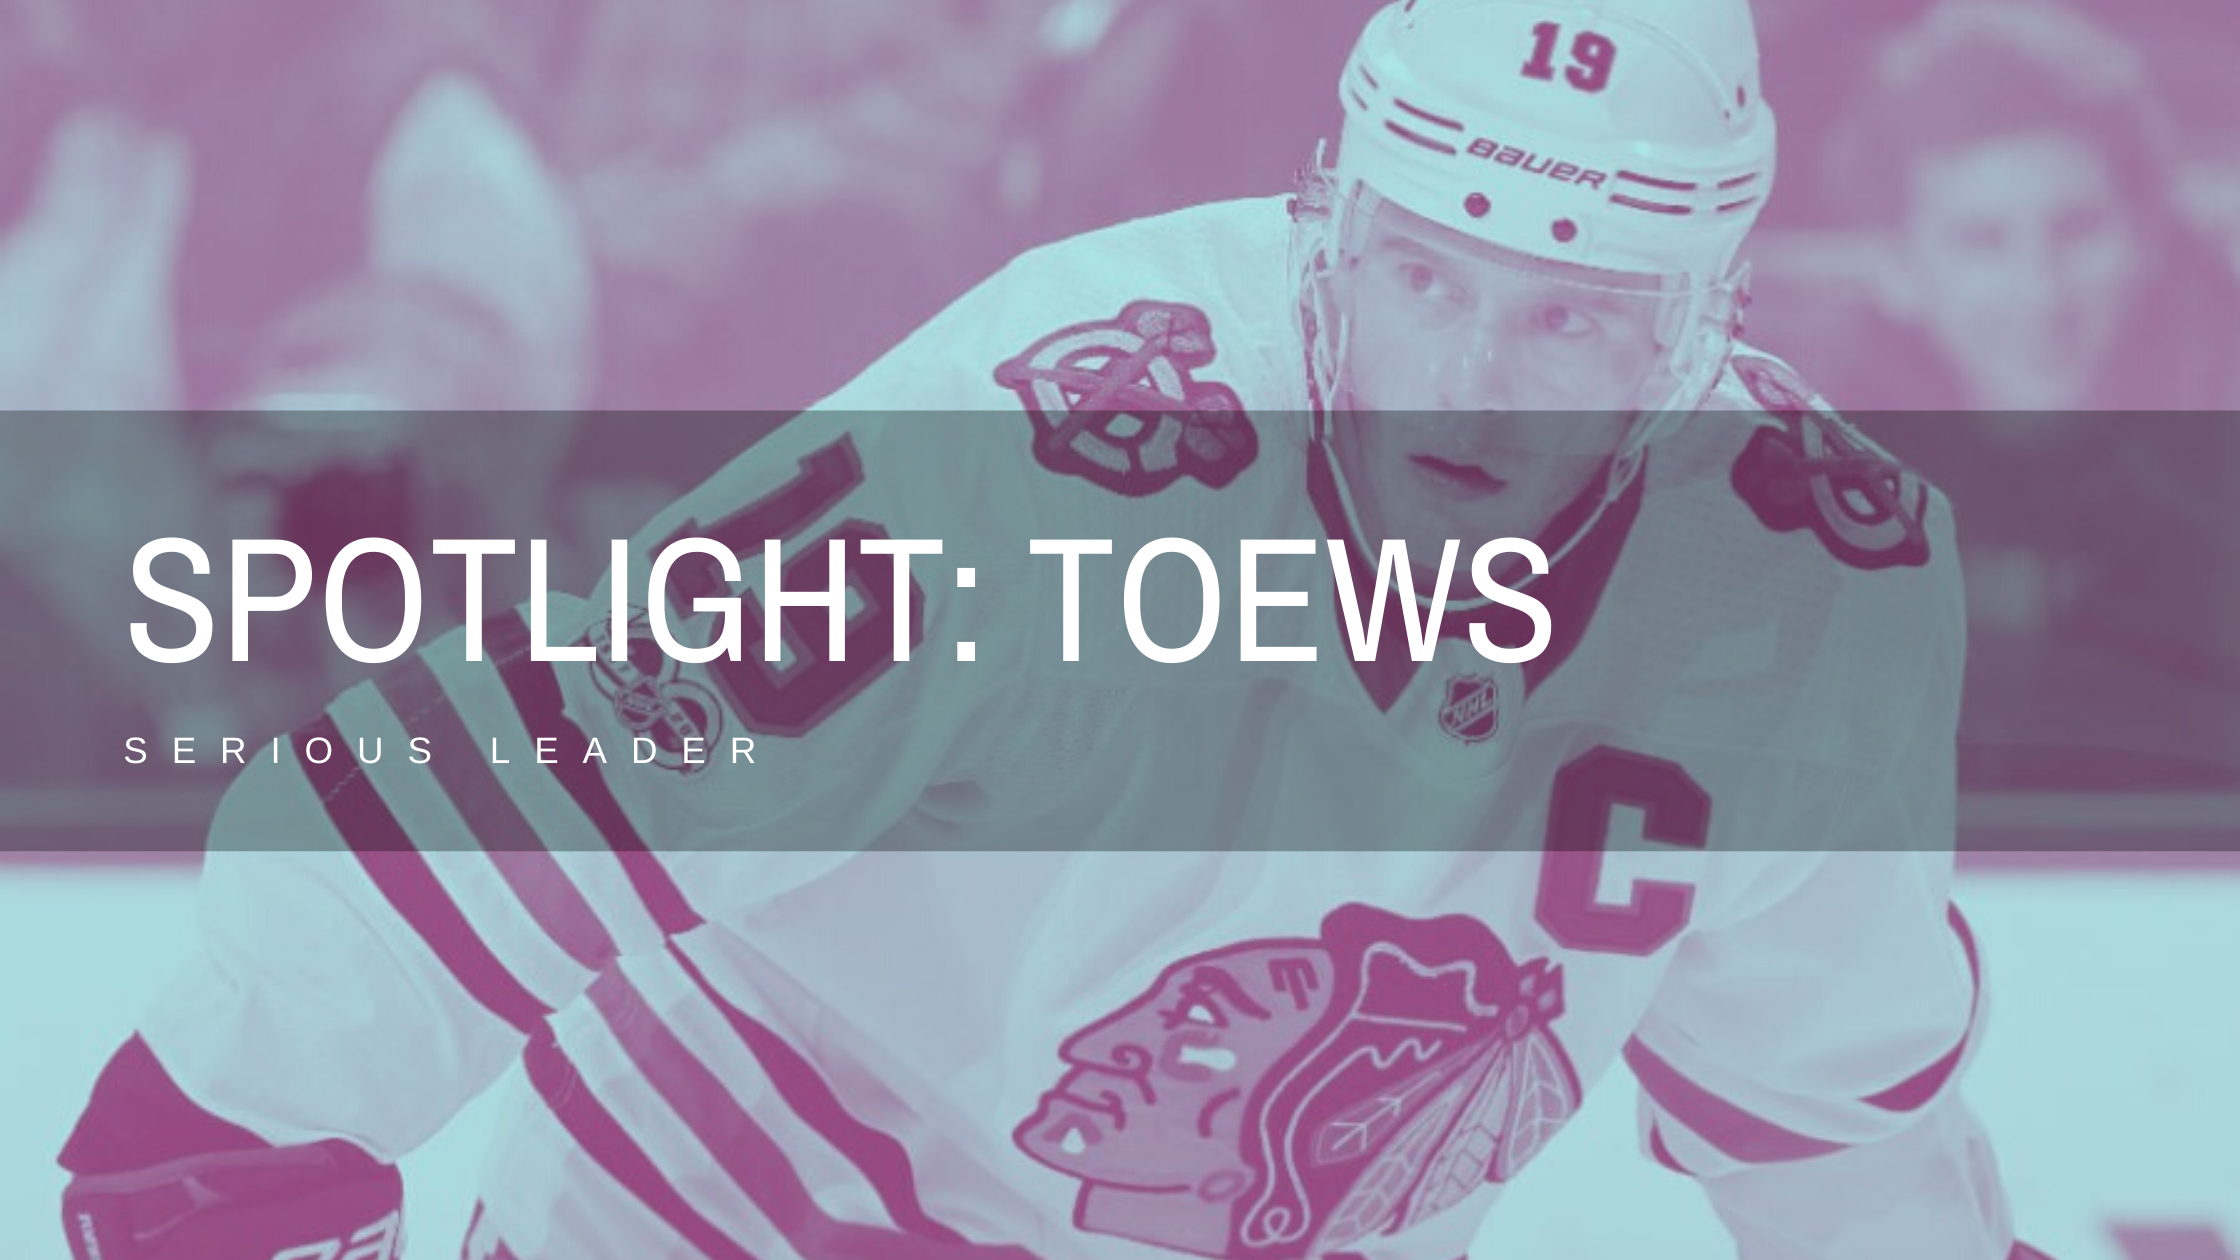 Serious Leadership: 5 Things We Can Learn from Jonathan Toews